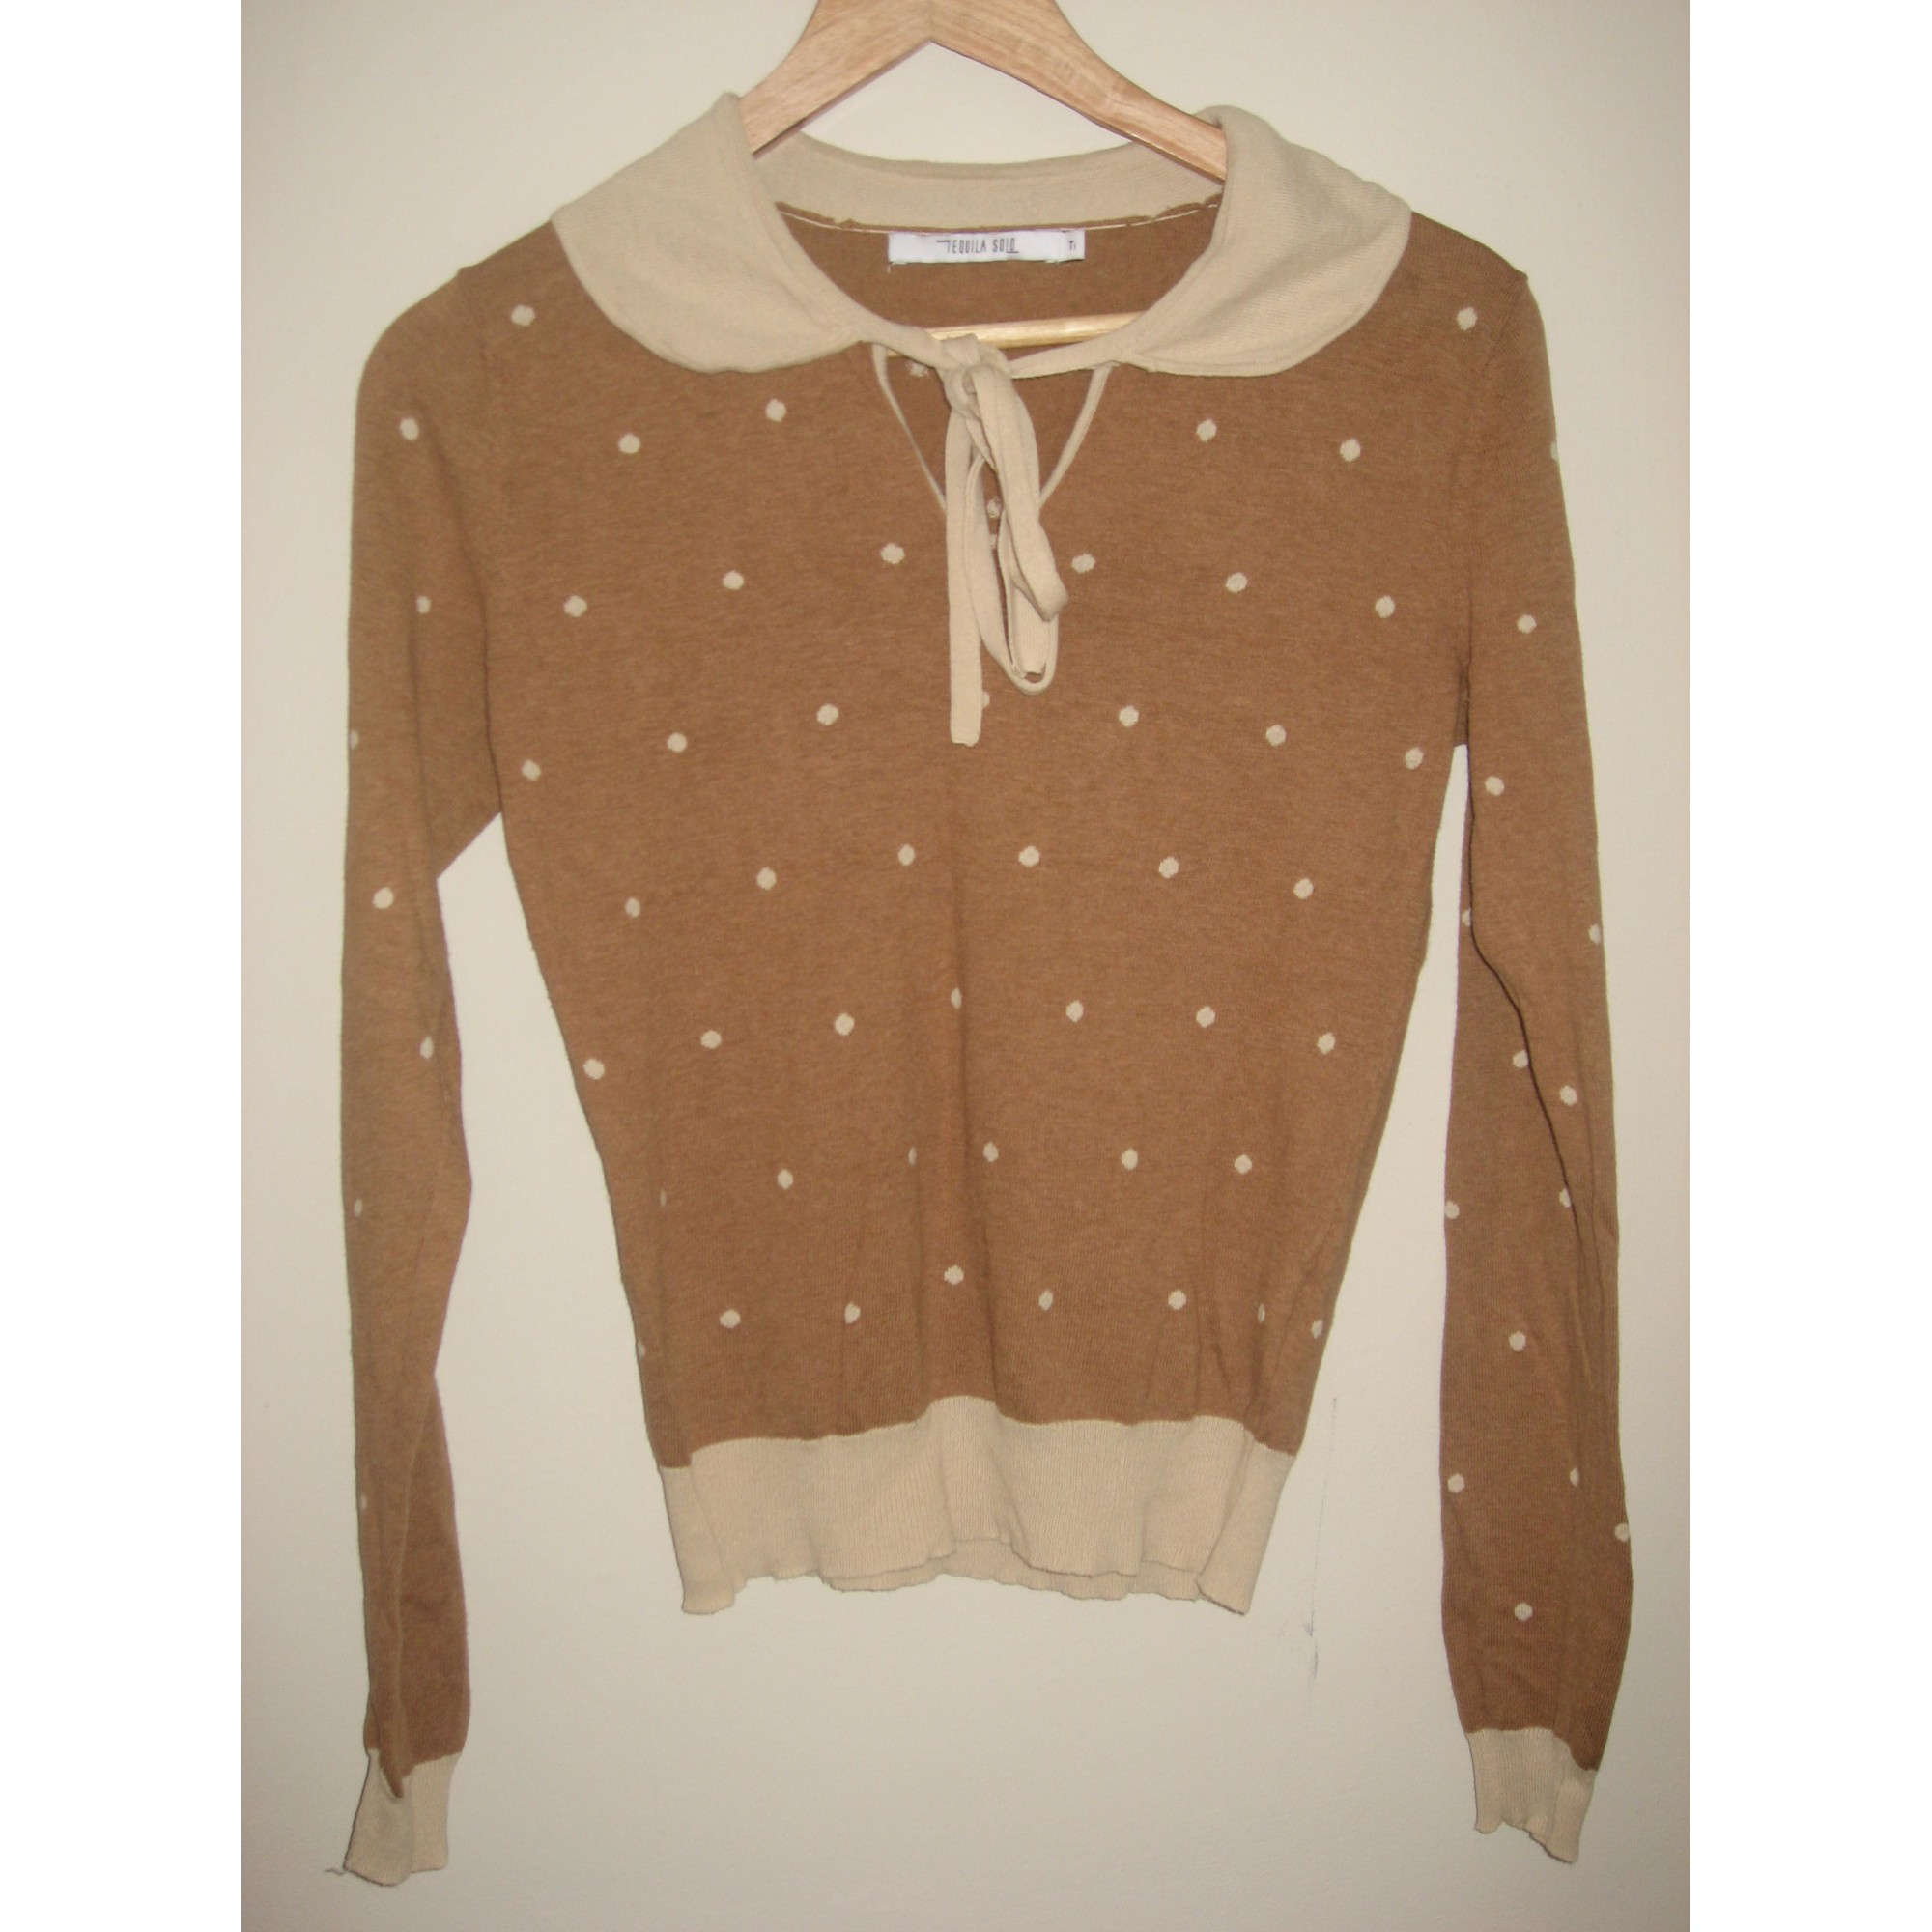 Pull TEQUILA SOLO Beige, camel